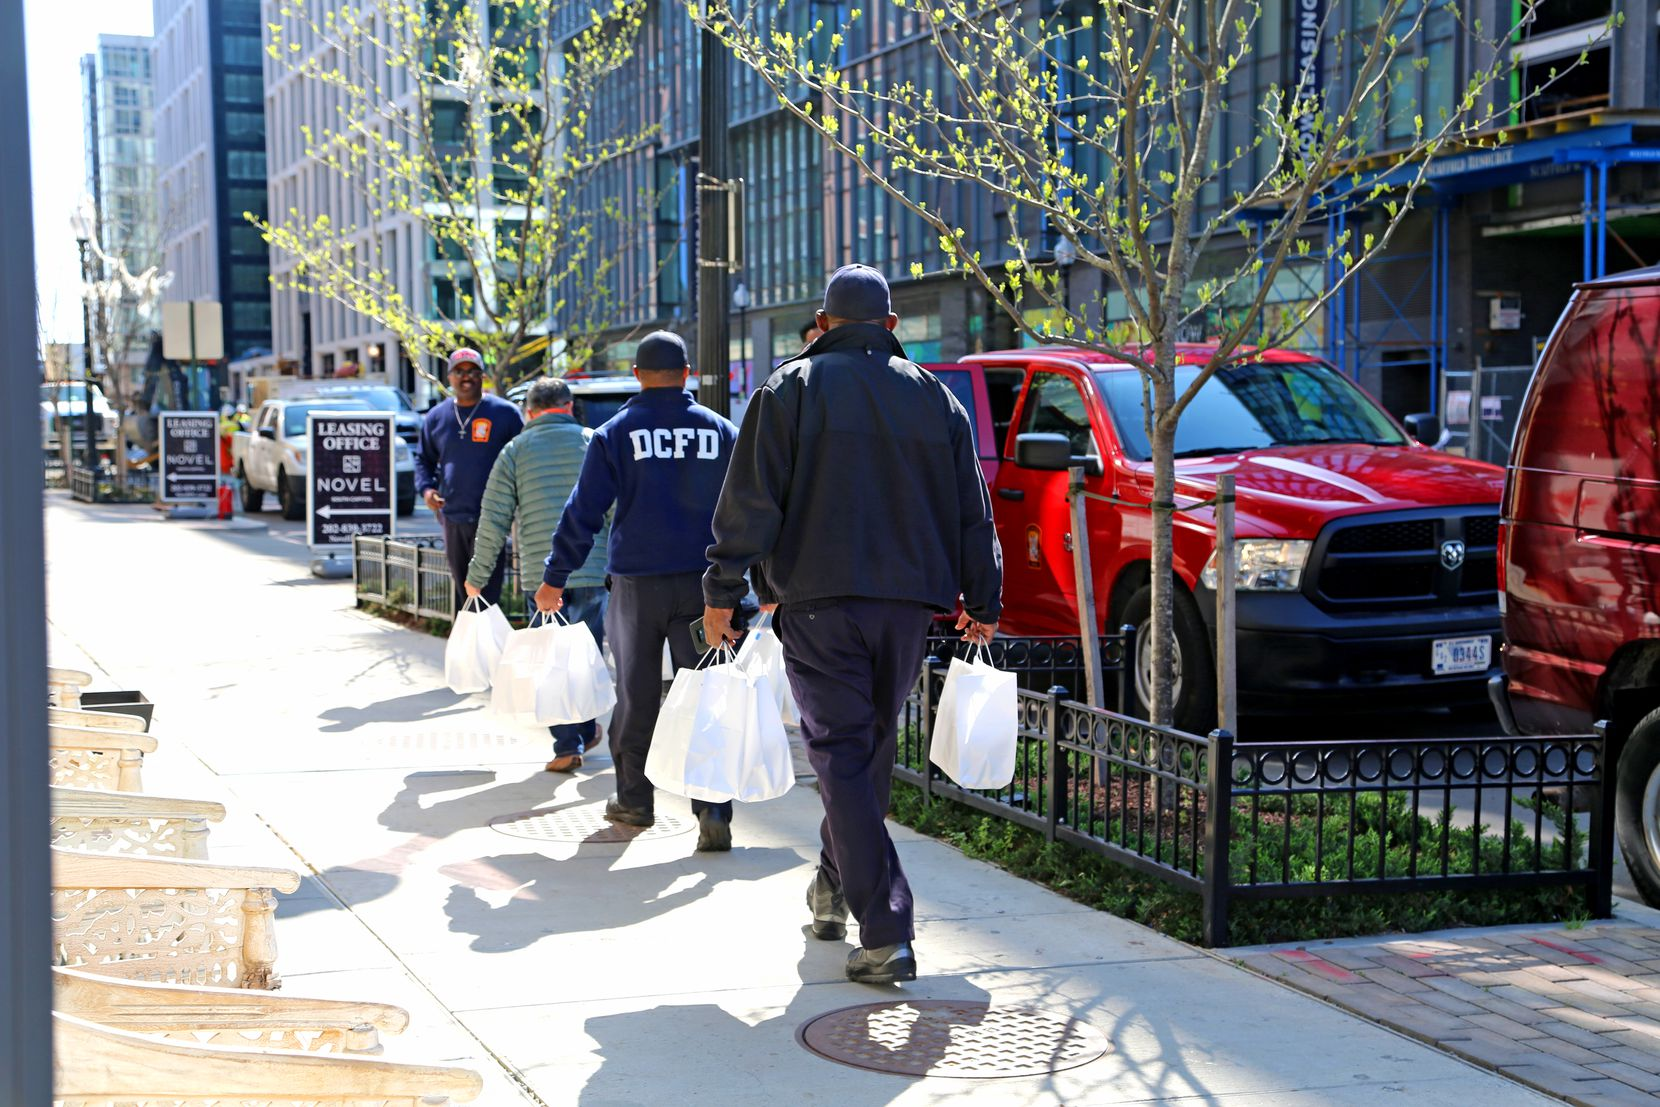 D.C. firefighters deliver meals as part of the Power of 10 Initiative.